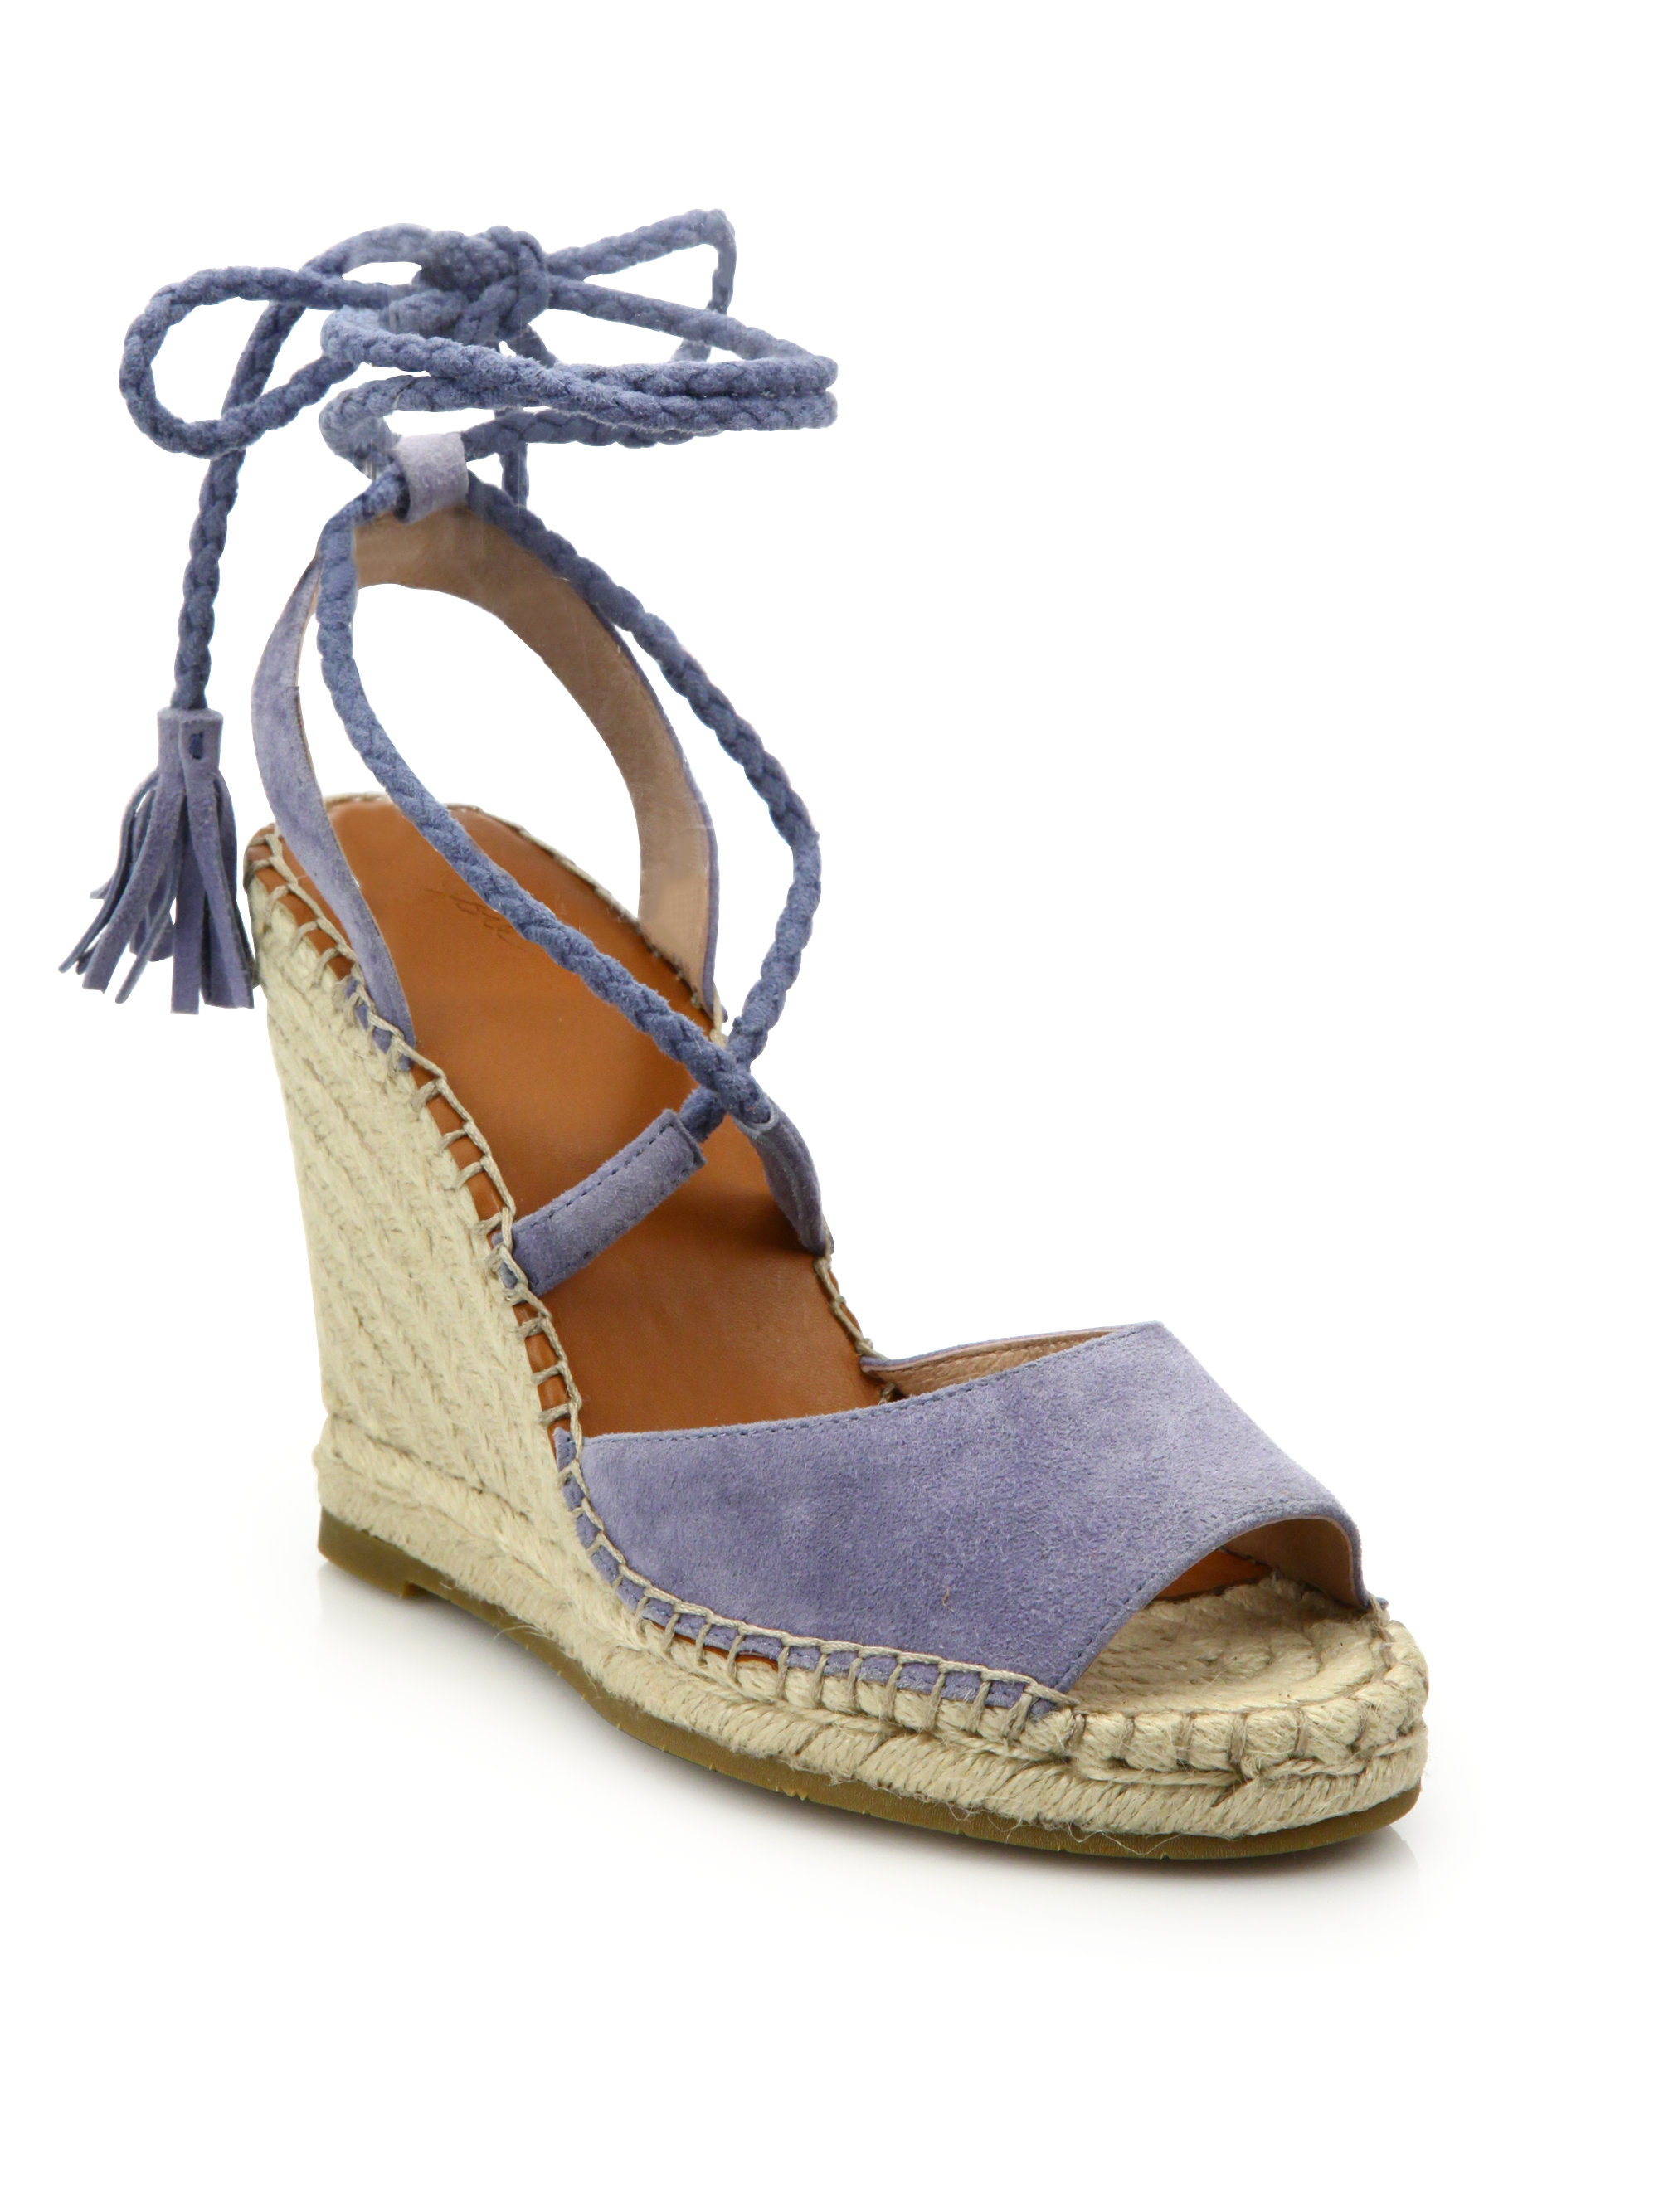 joie phyllis suede lace up espadrille wedge sandals in